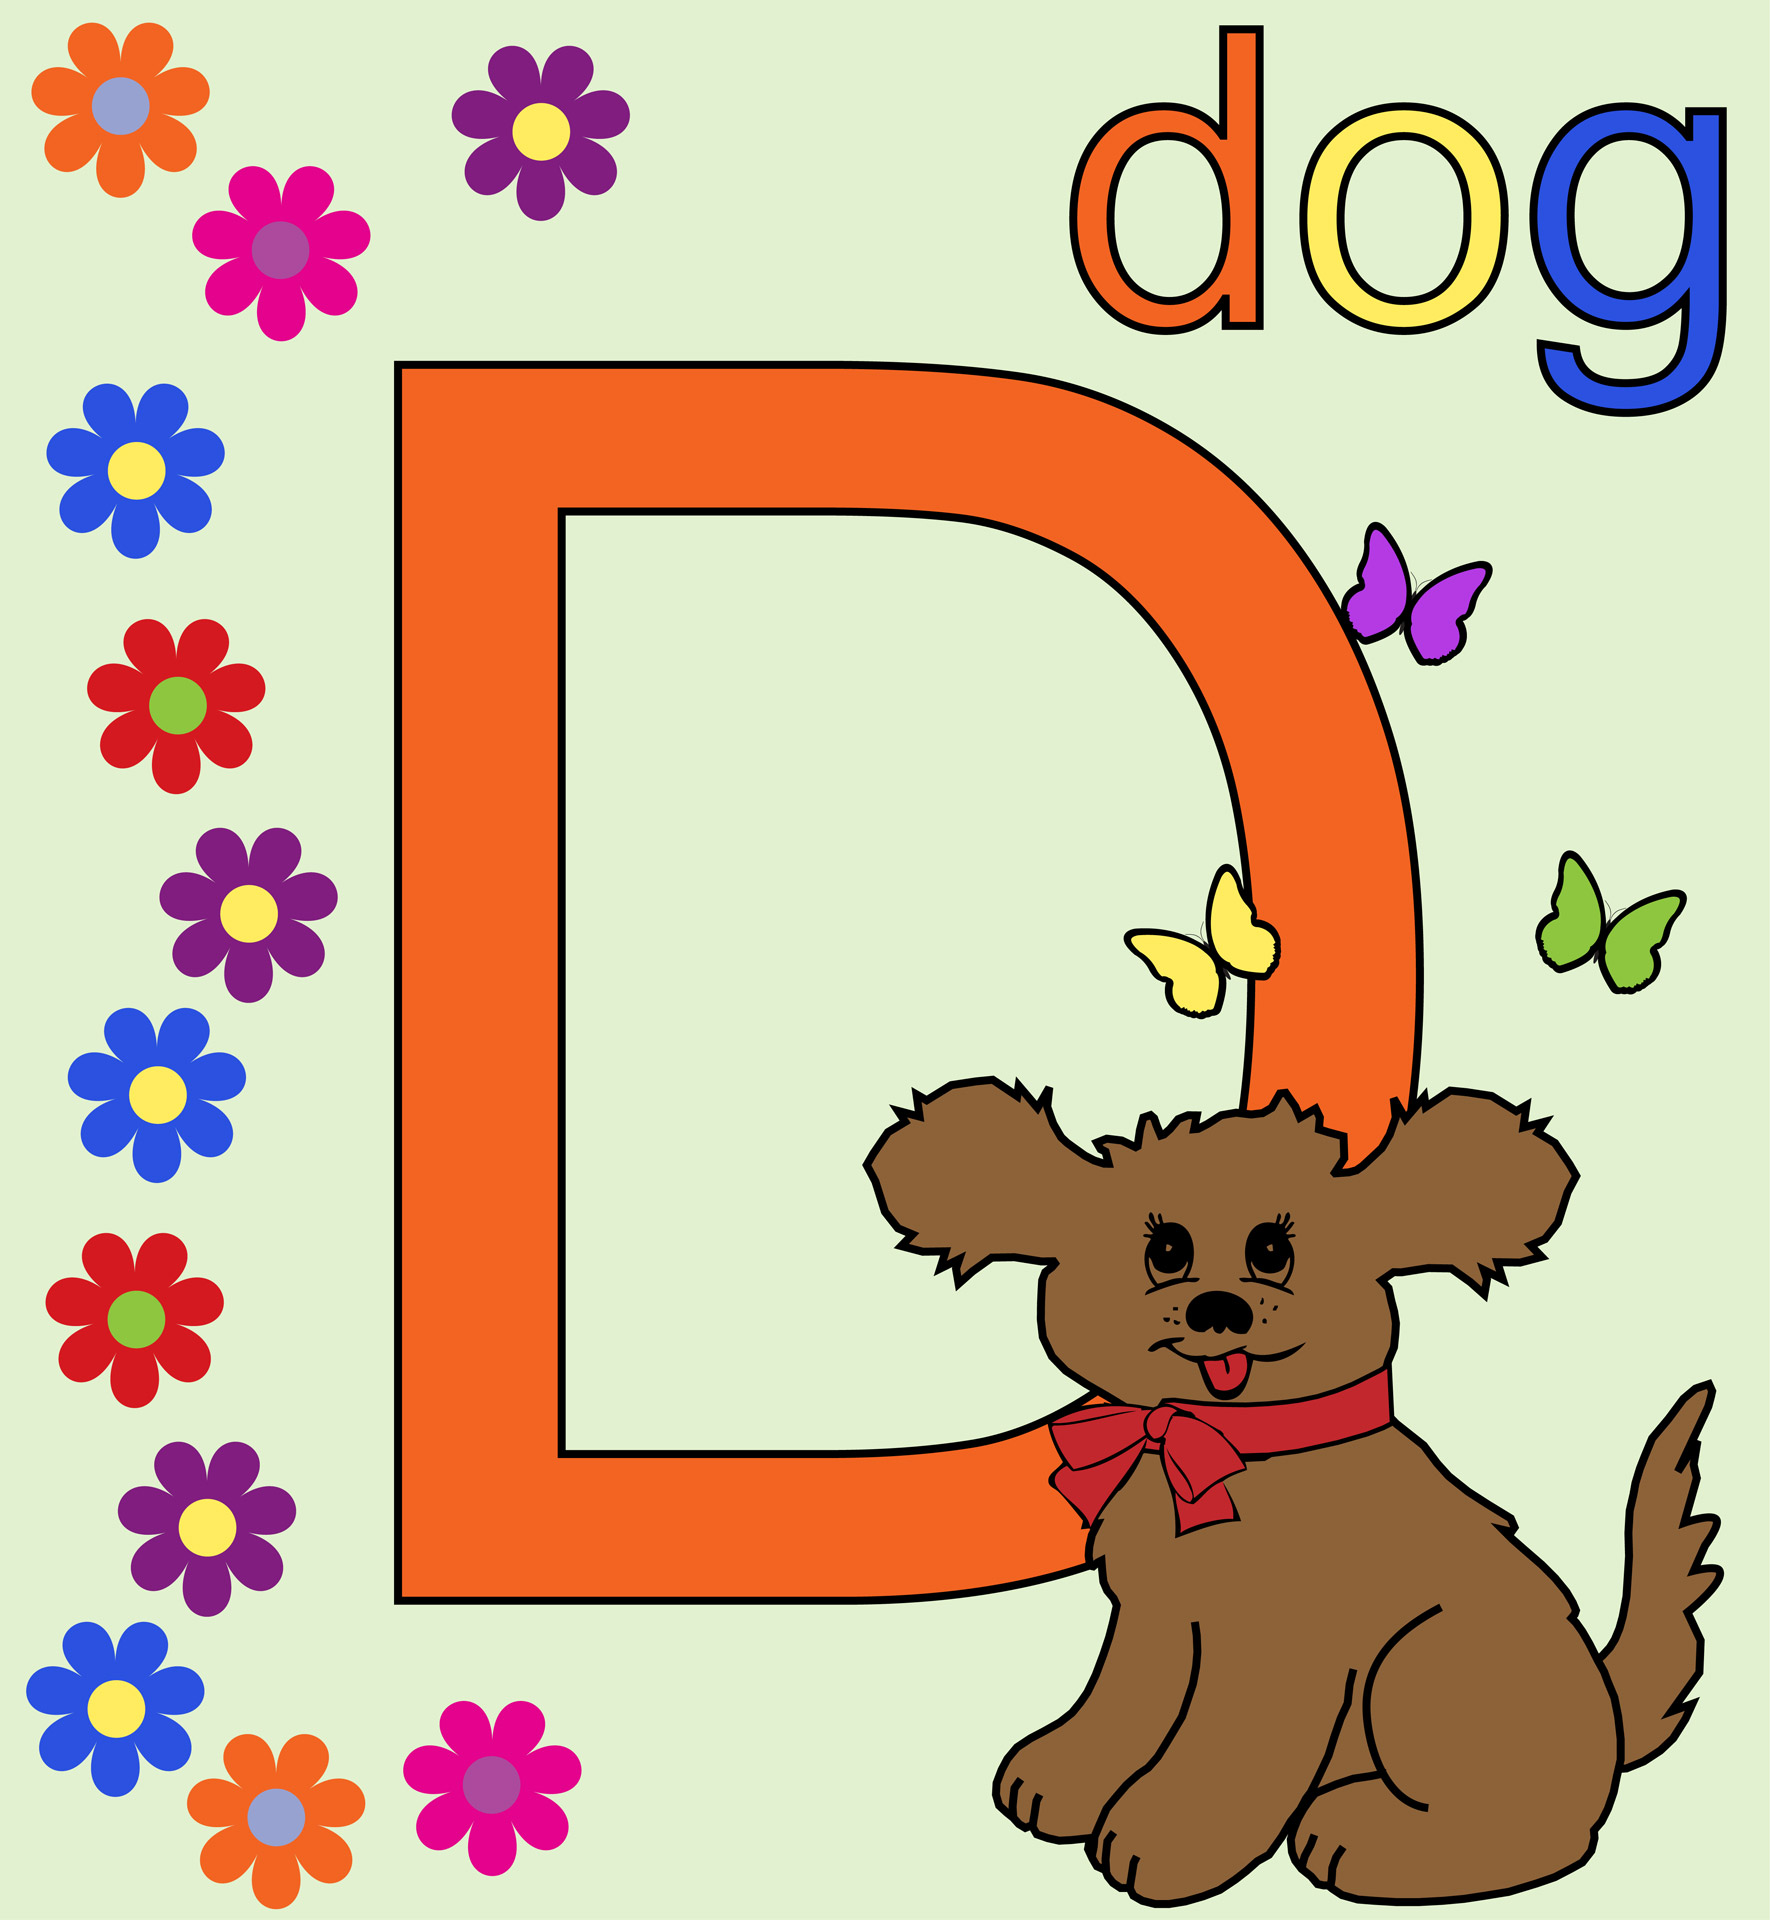 Dog Cute Letter D Free Stock Photo